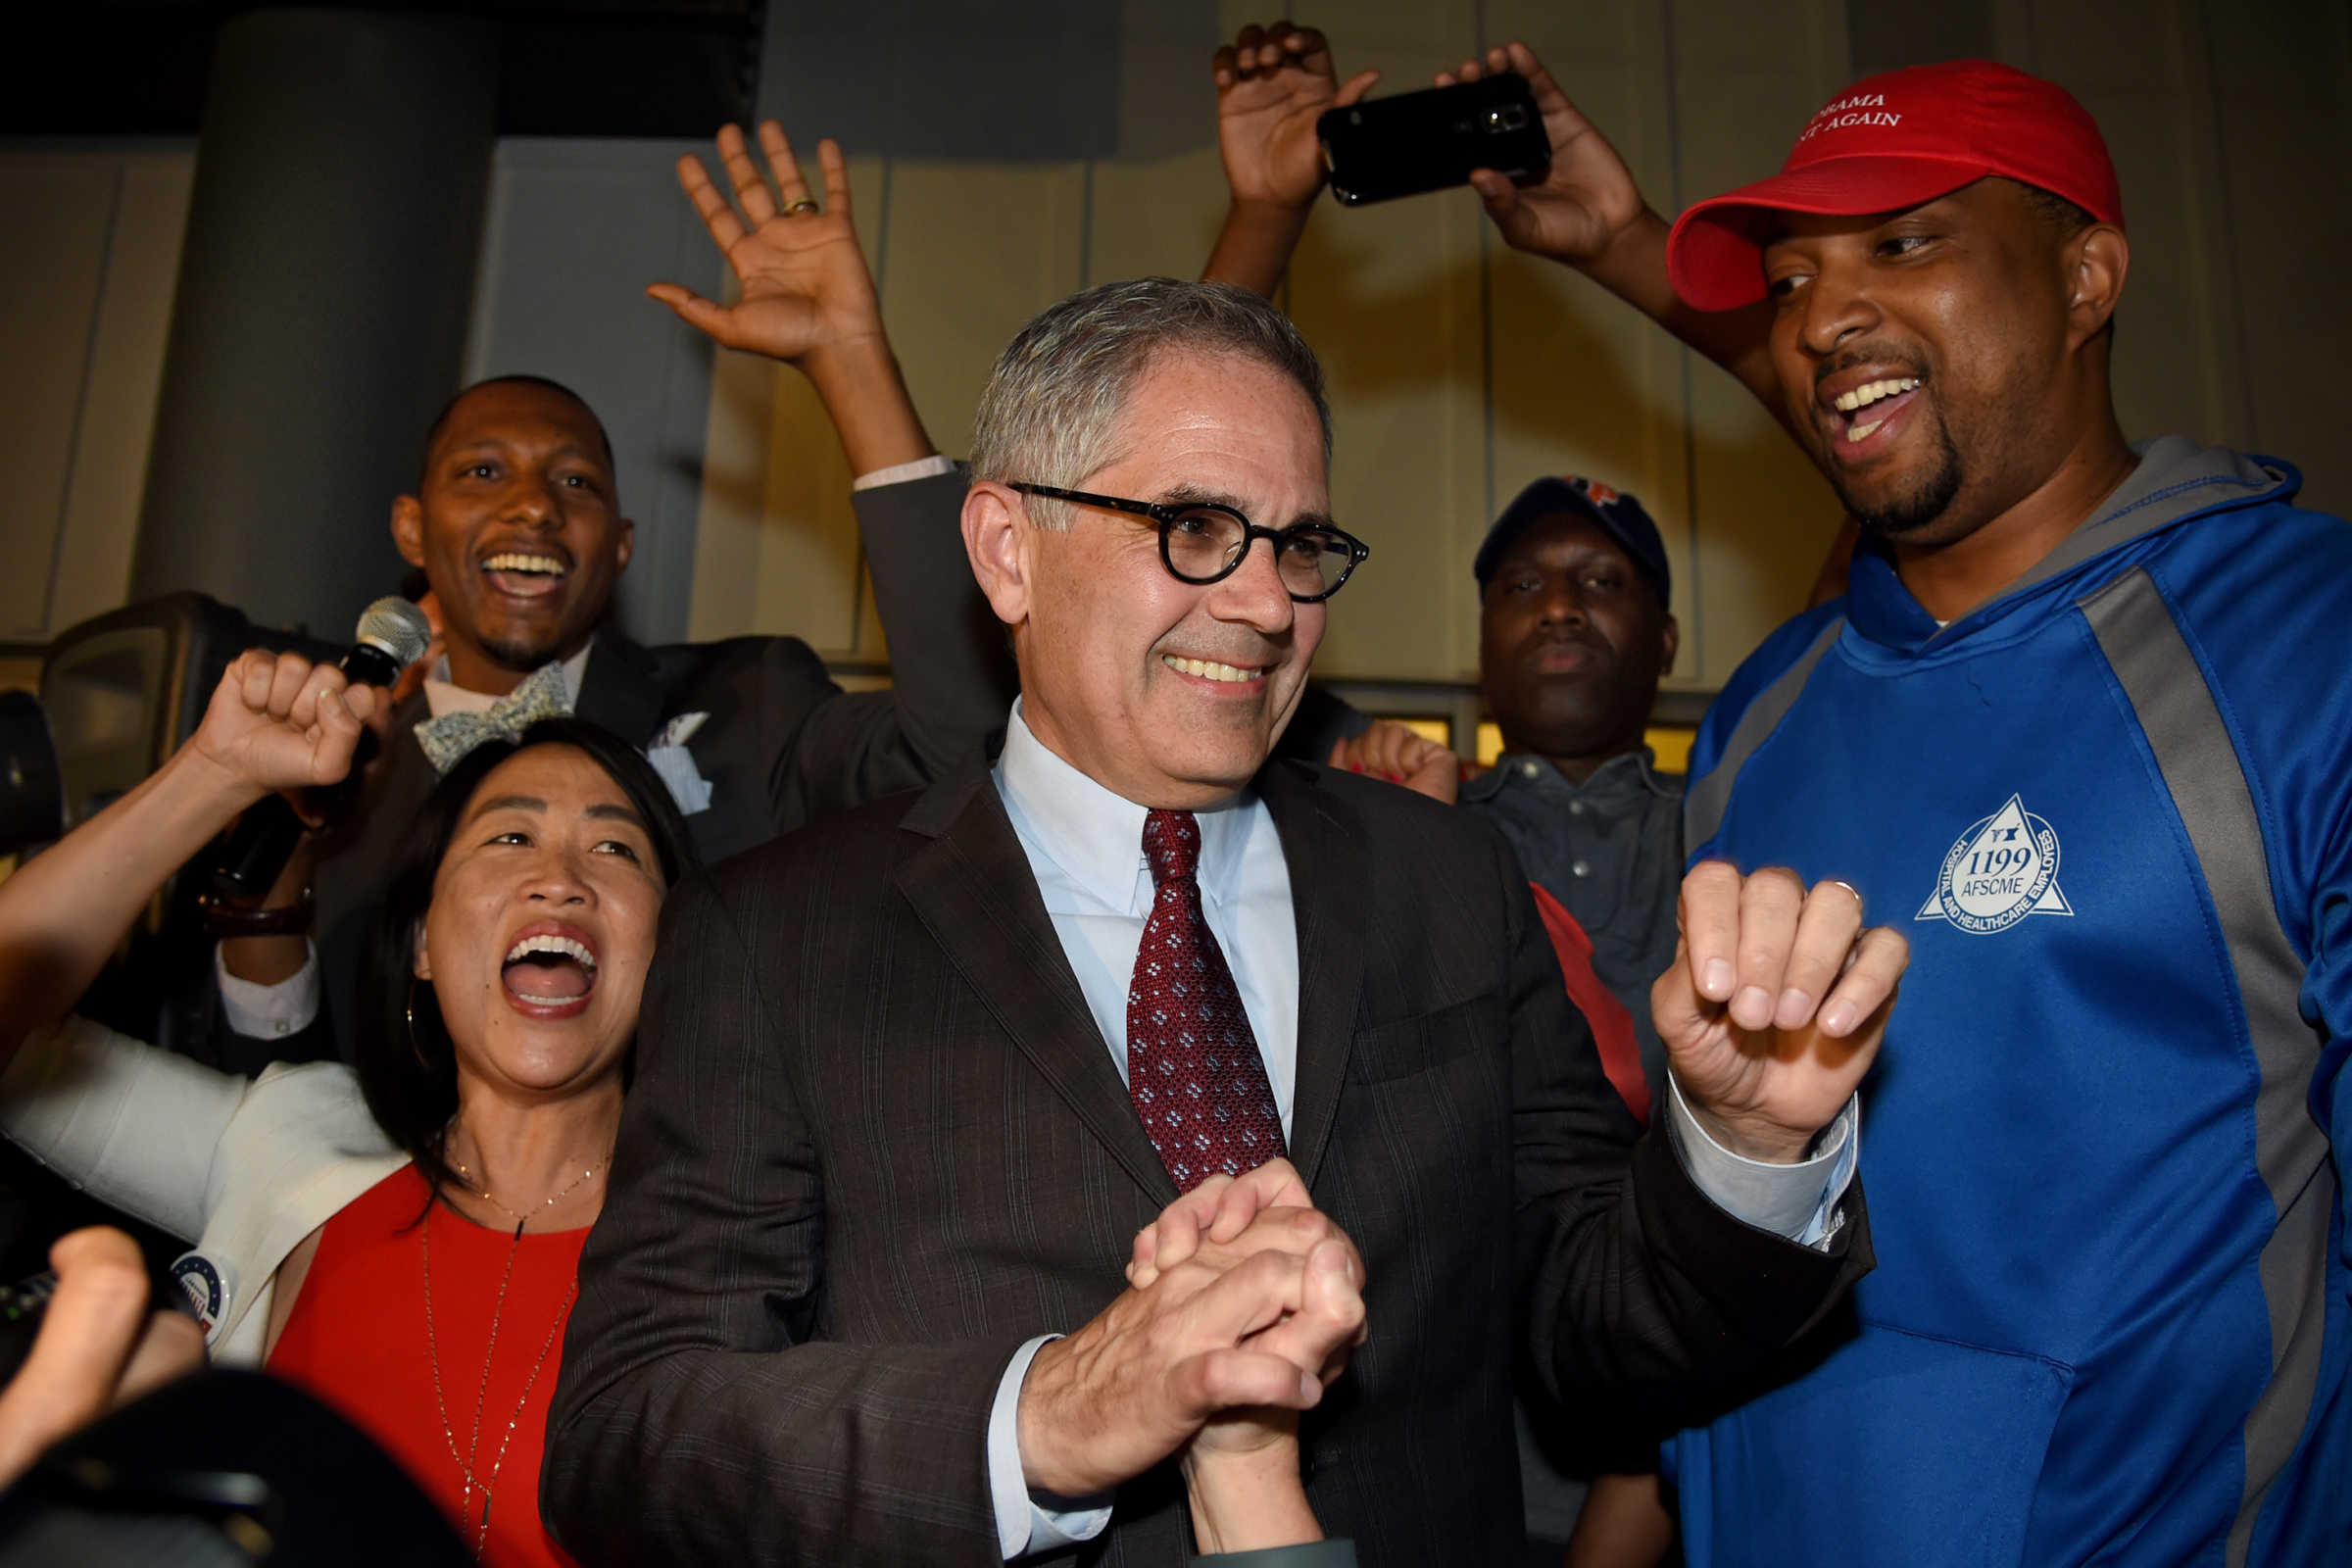 Civil rights attorney and District Attorney candidate Larry Krasner makes his victory speech at his election night party at the John C. Anderson Apartments on May 16, 2017.